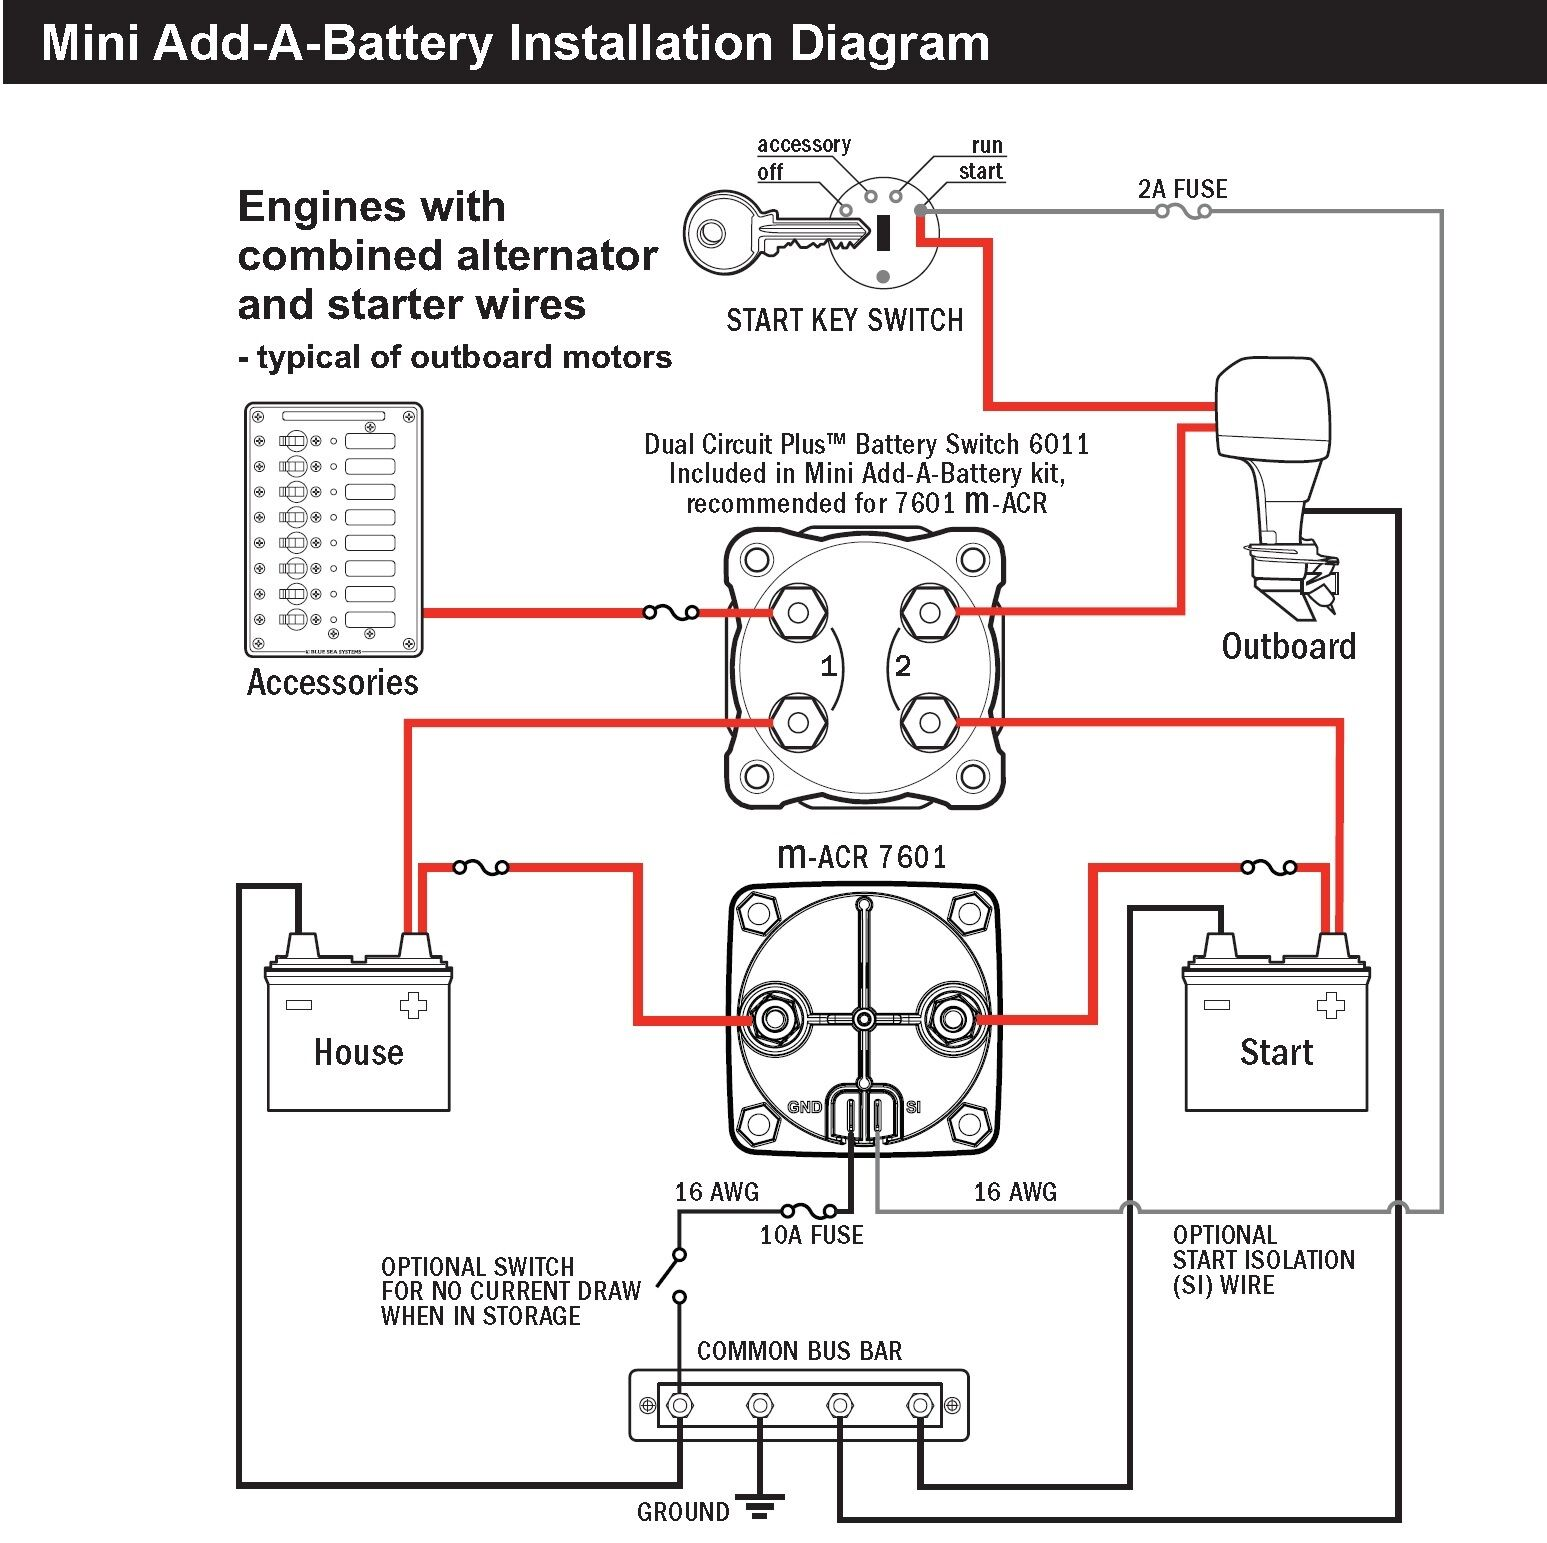 $(KGrHqJHJEkFE2s+(4!BRe pREItg~~60_57 which battery switch is best for a 21 with two batteries plus main scotty downrigger wiring diagram at fashall.co